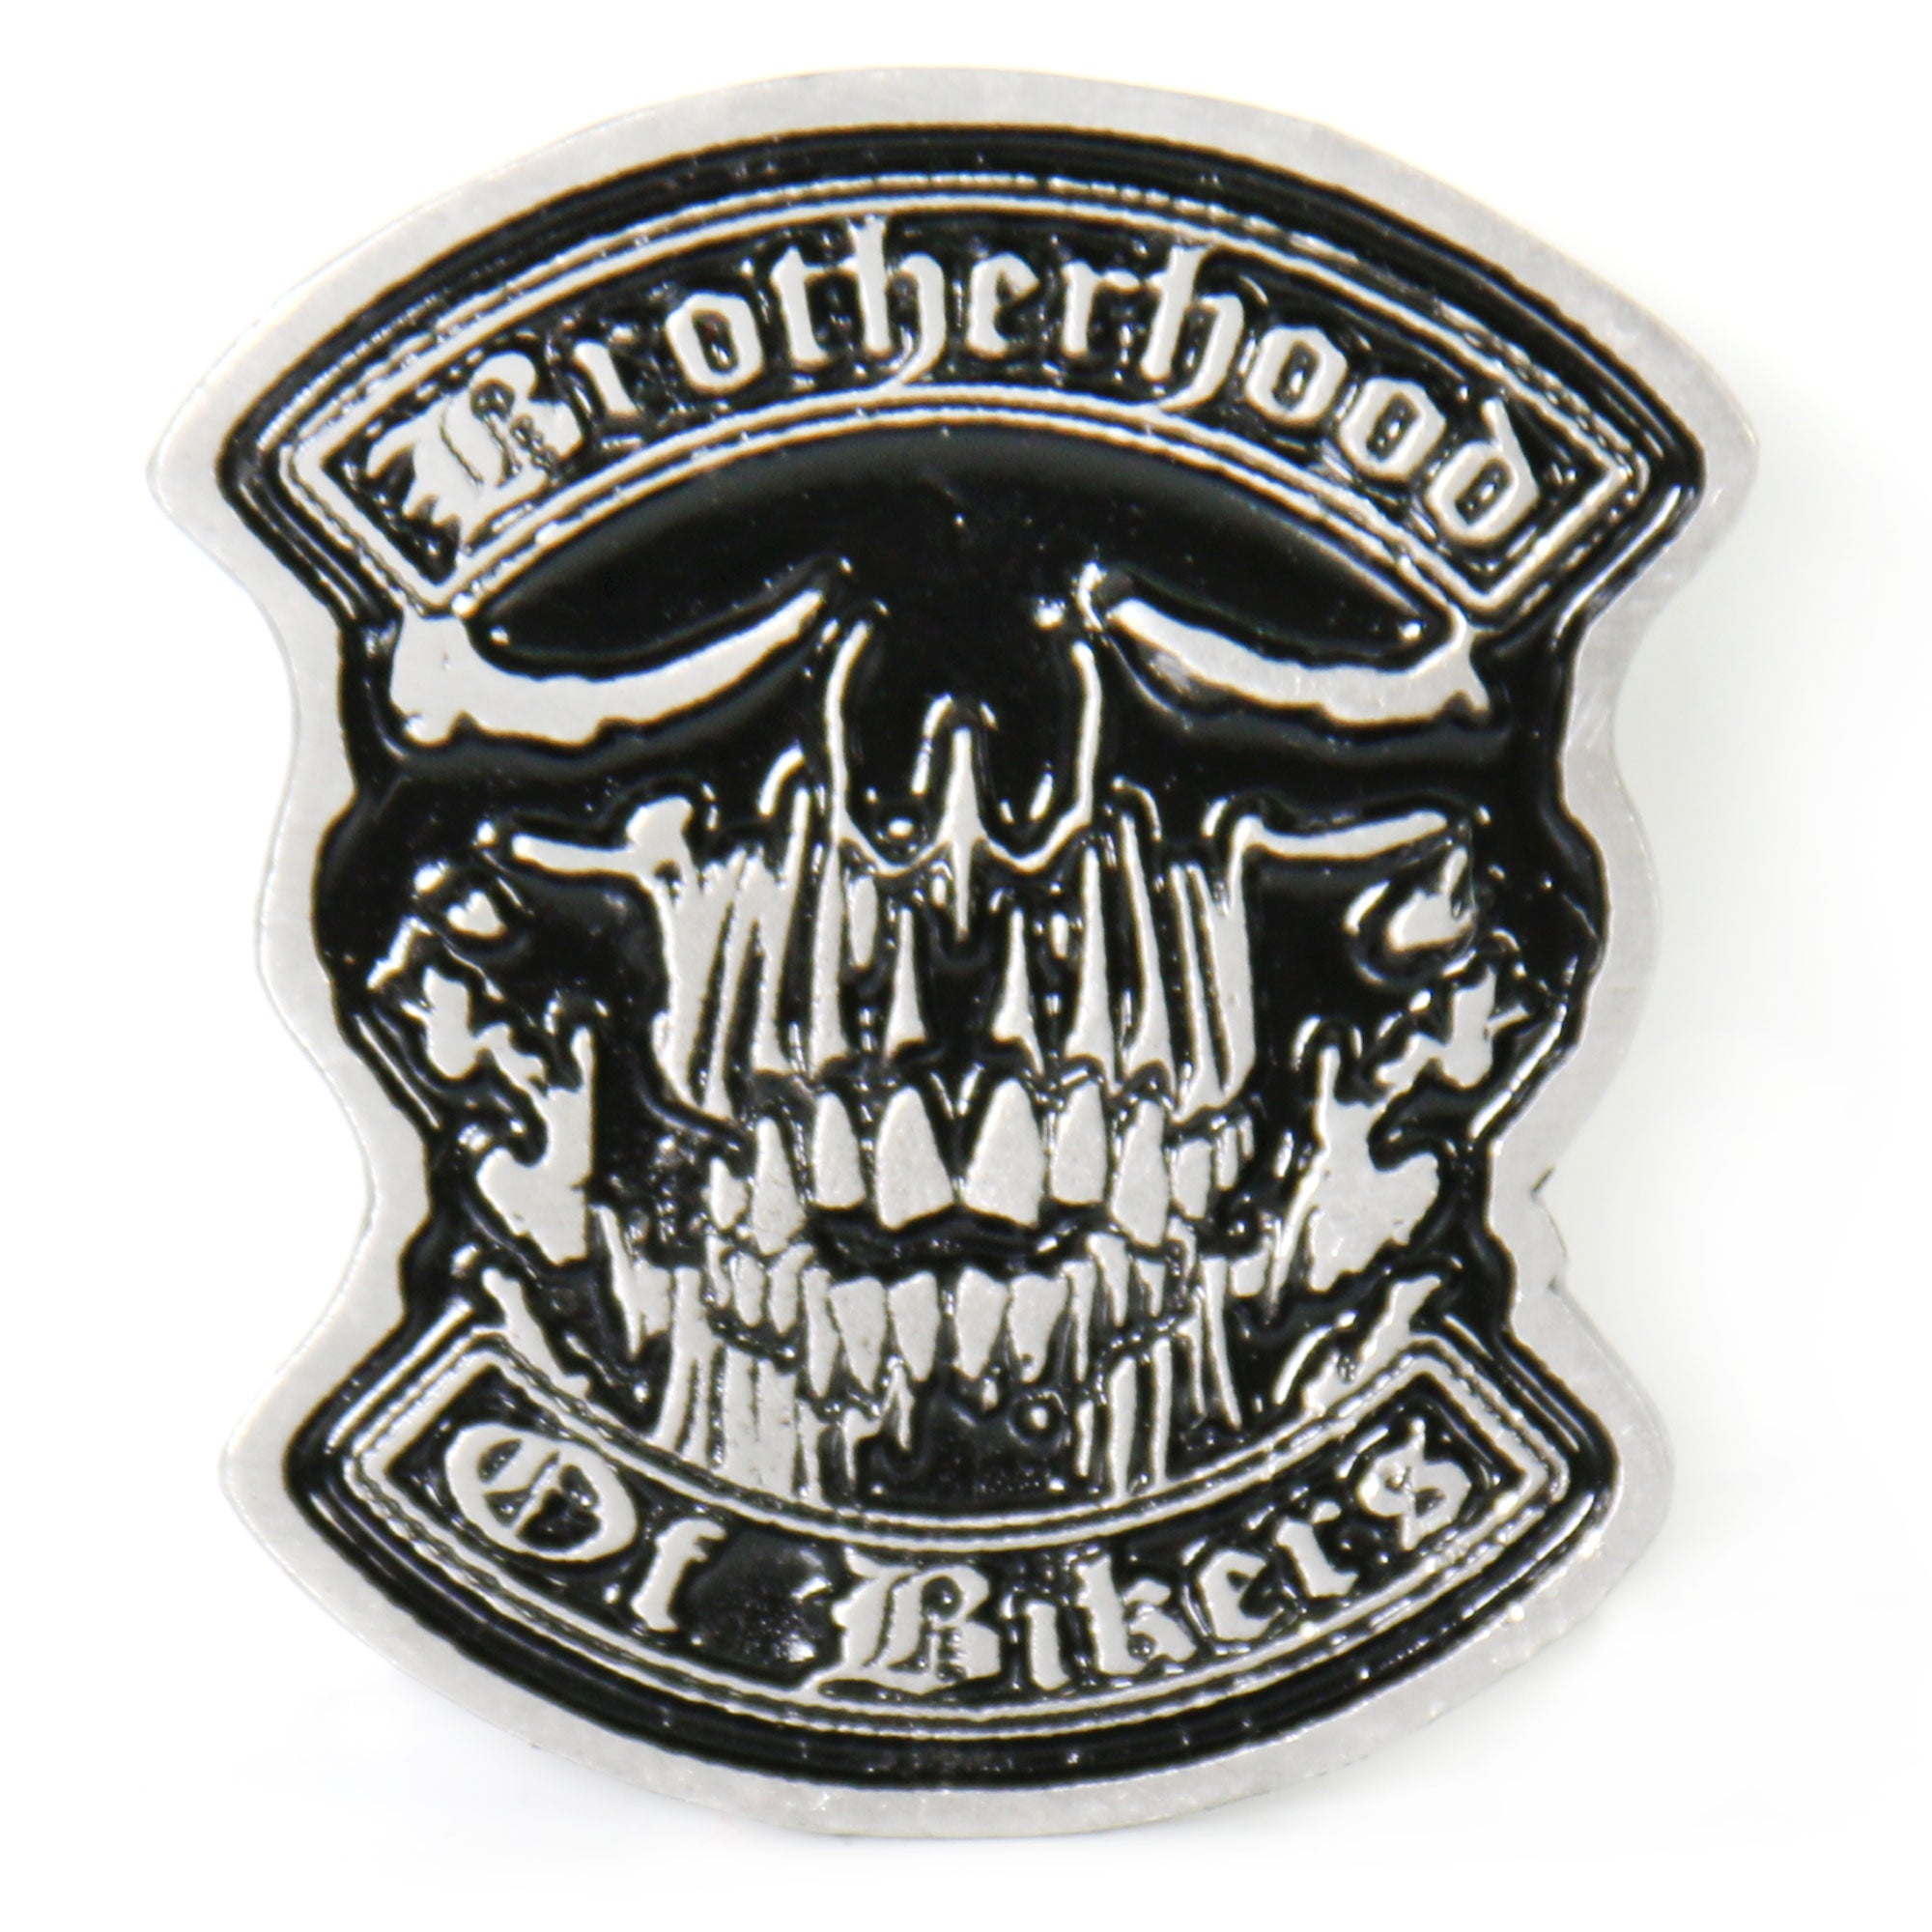 Hot Leathers Brotherhood of Bikers Pin